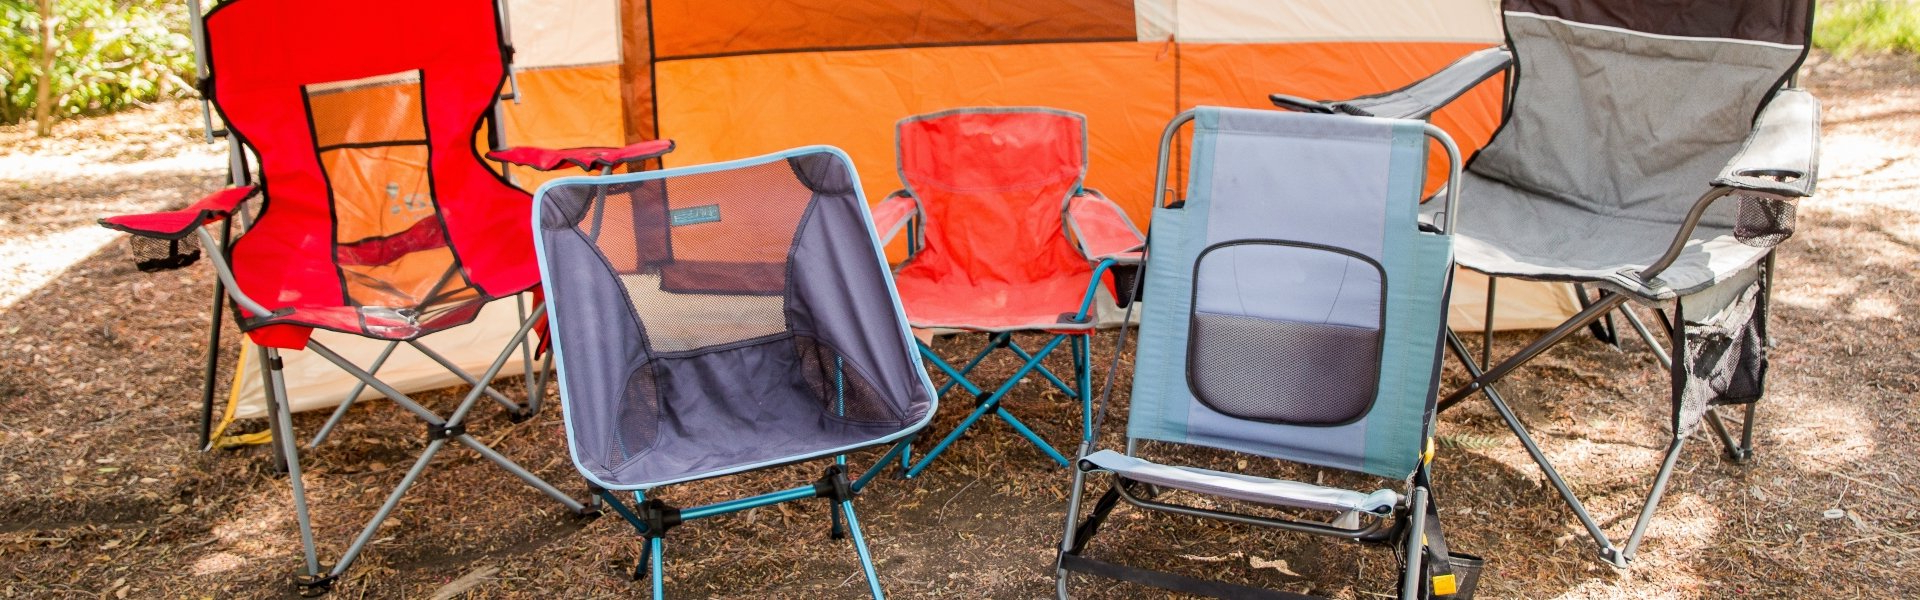 Oversize Wider Armrest Padded Lounge Chairs Inside Most Recently Released 8 Best Heavy Duty Camping Chairs Reviewed In Detail (oct (View 24 of 25)